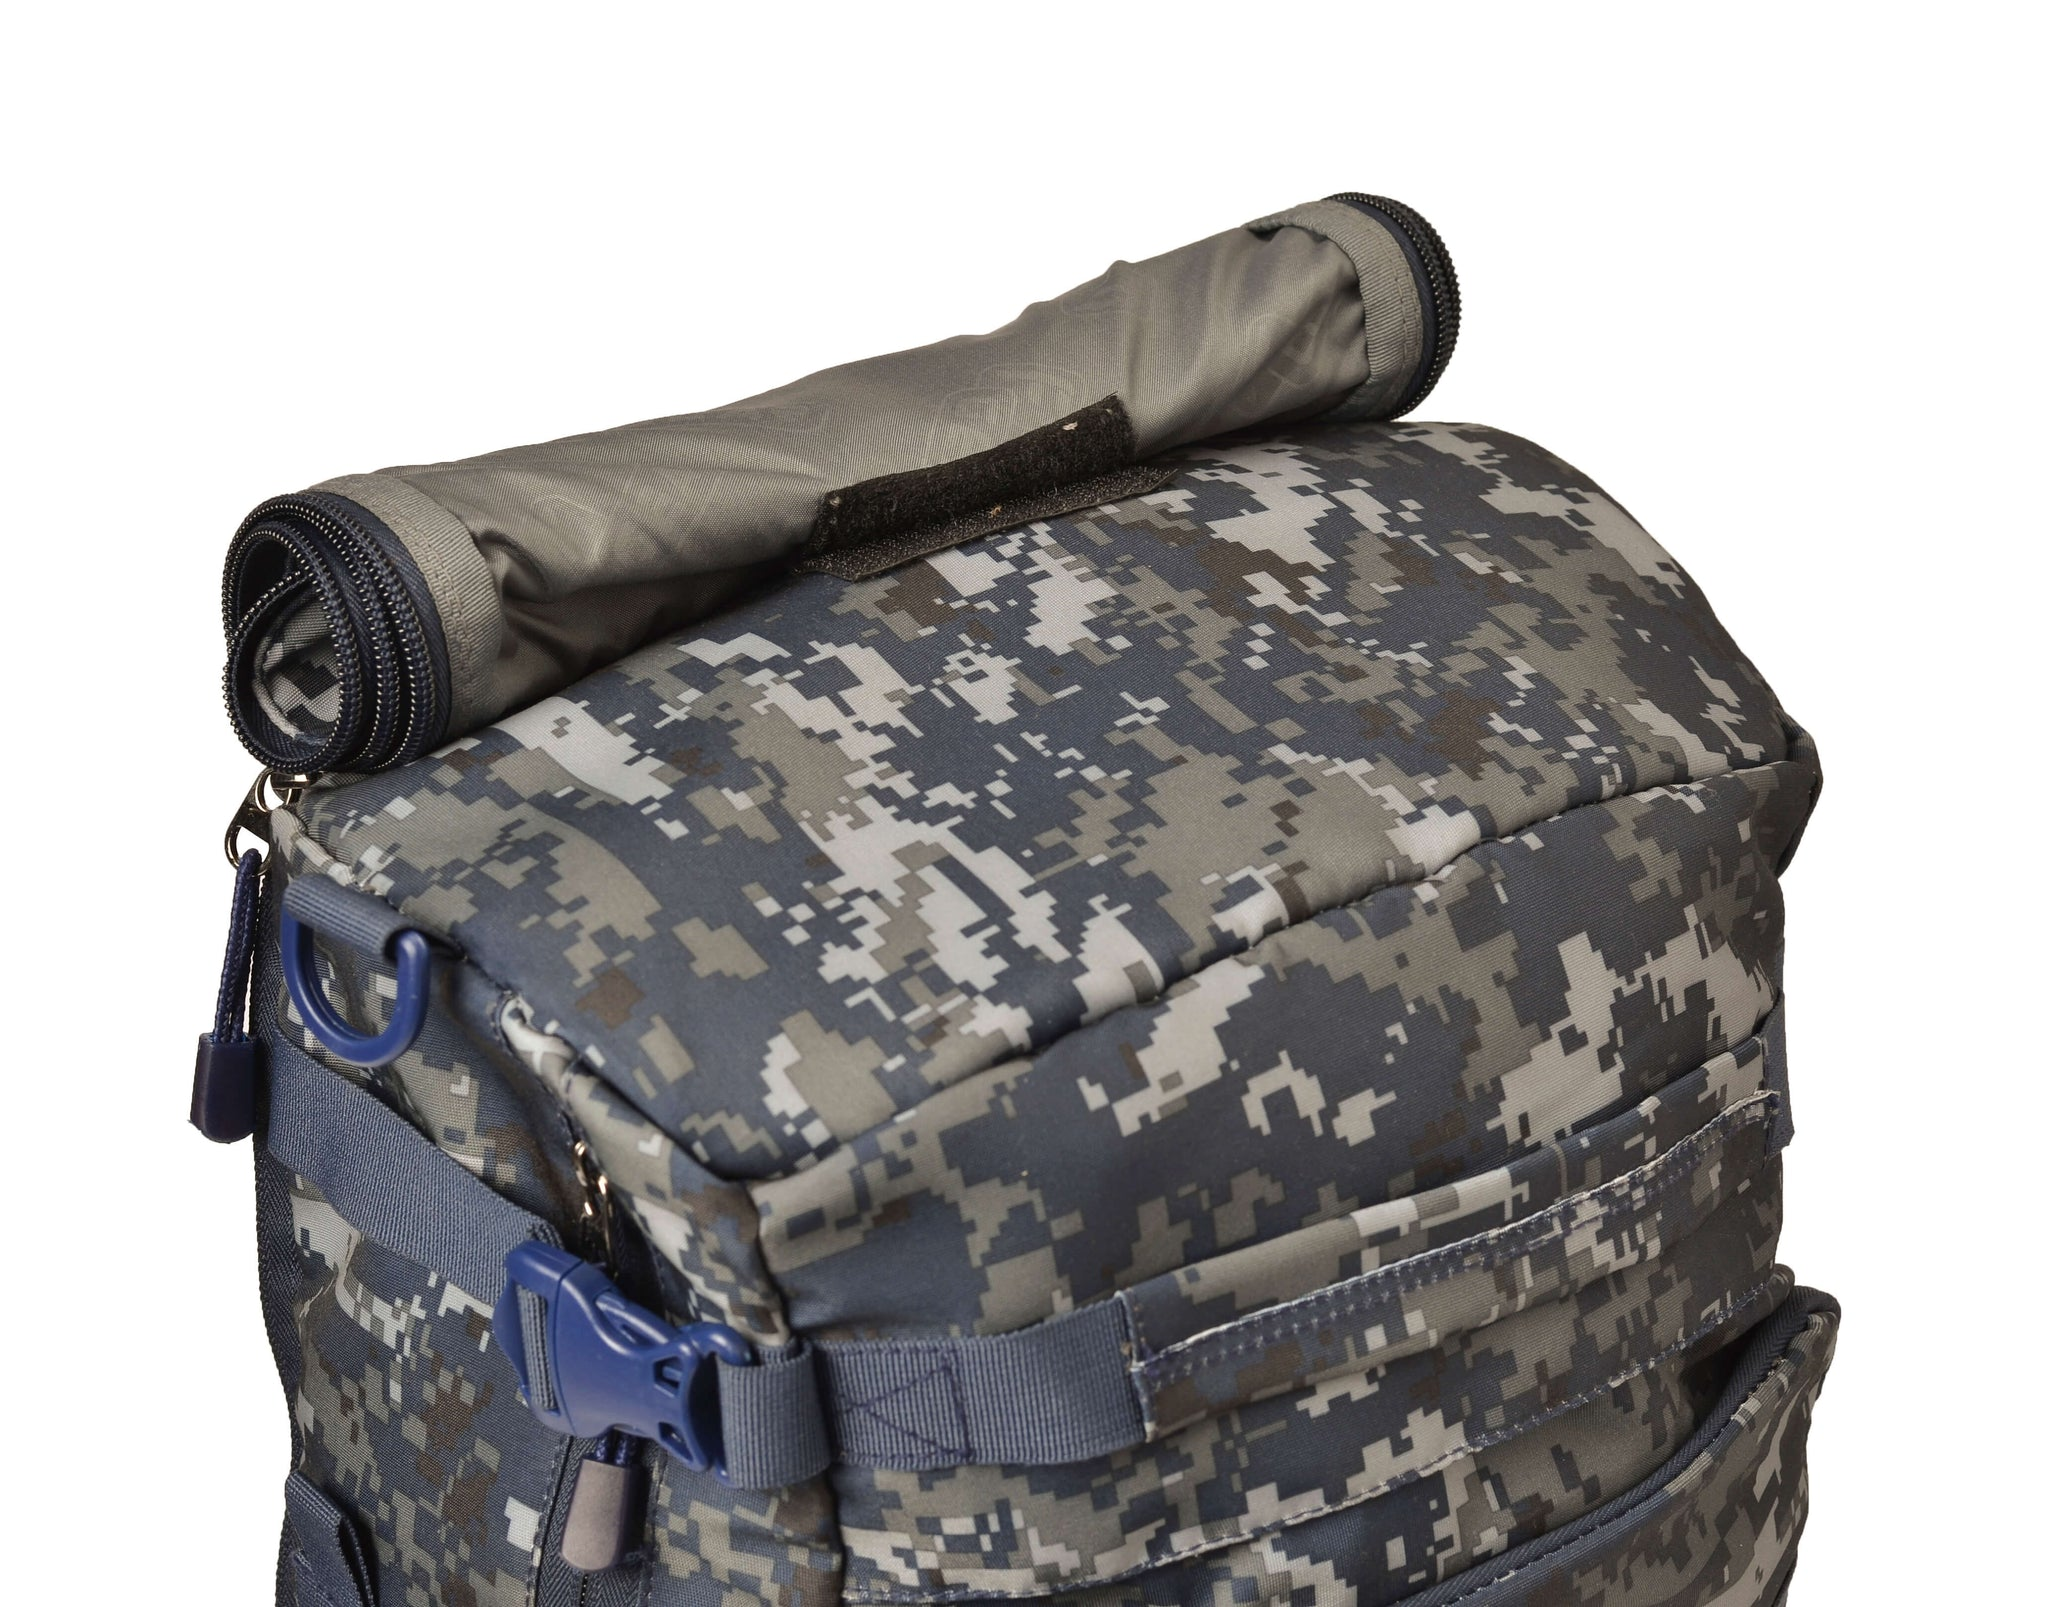 F Gear Military Garrison 36 Liters Rucksack Backpack (Marpat Navy Digital Camo)